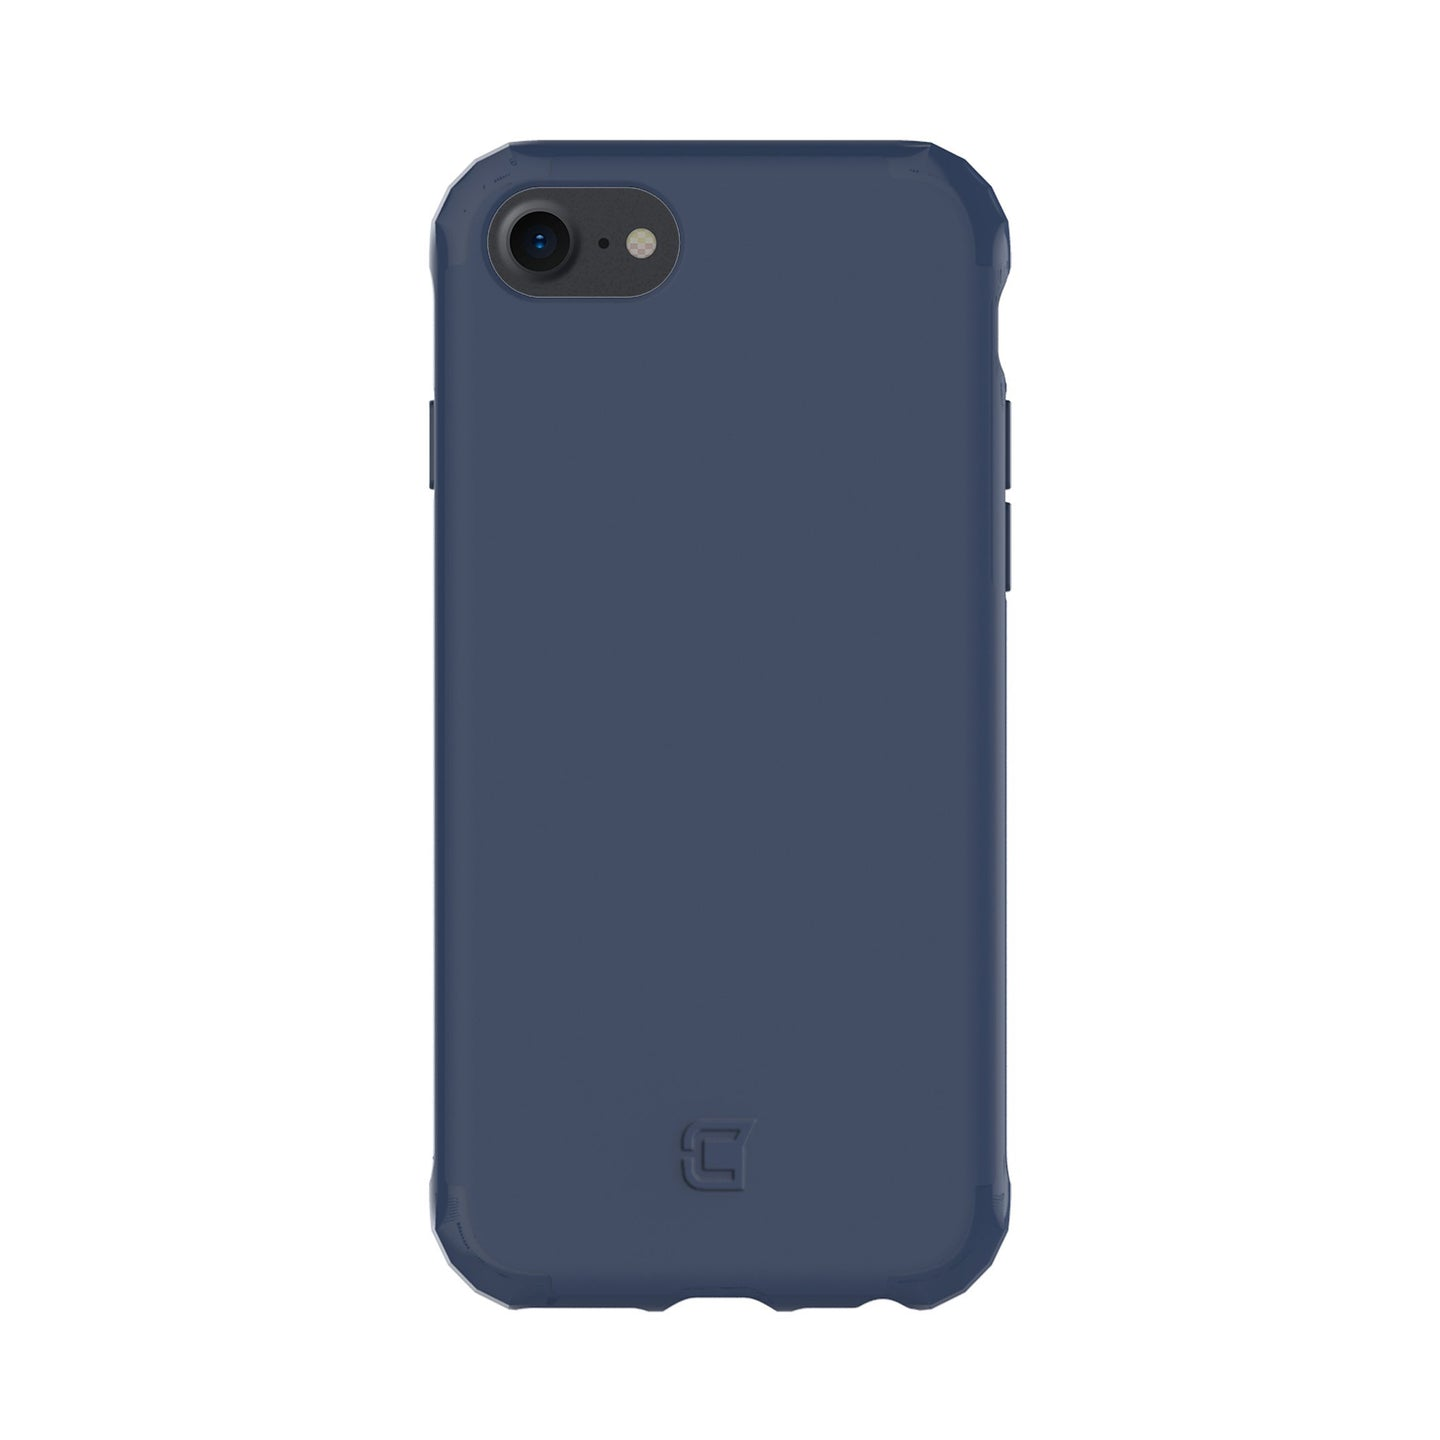 iPhone SE 2nd Generation - Magnetic Case - Navy Blue